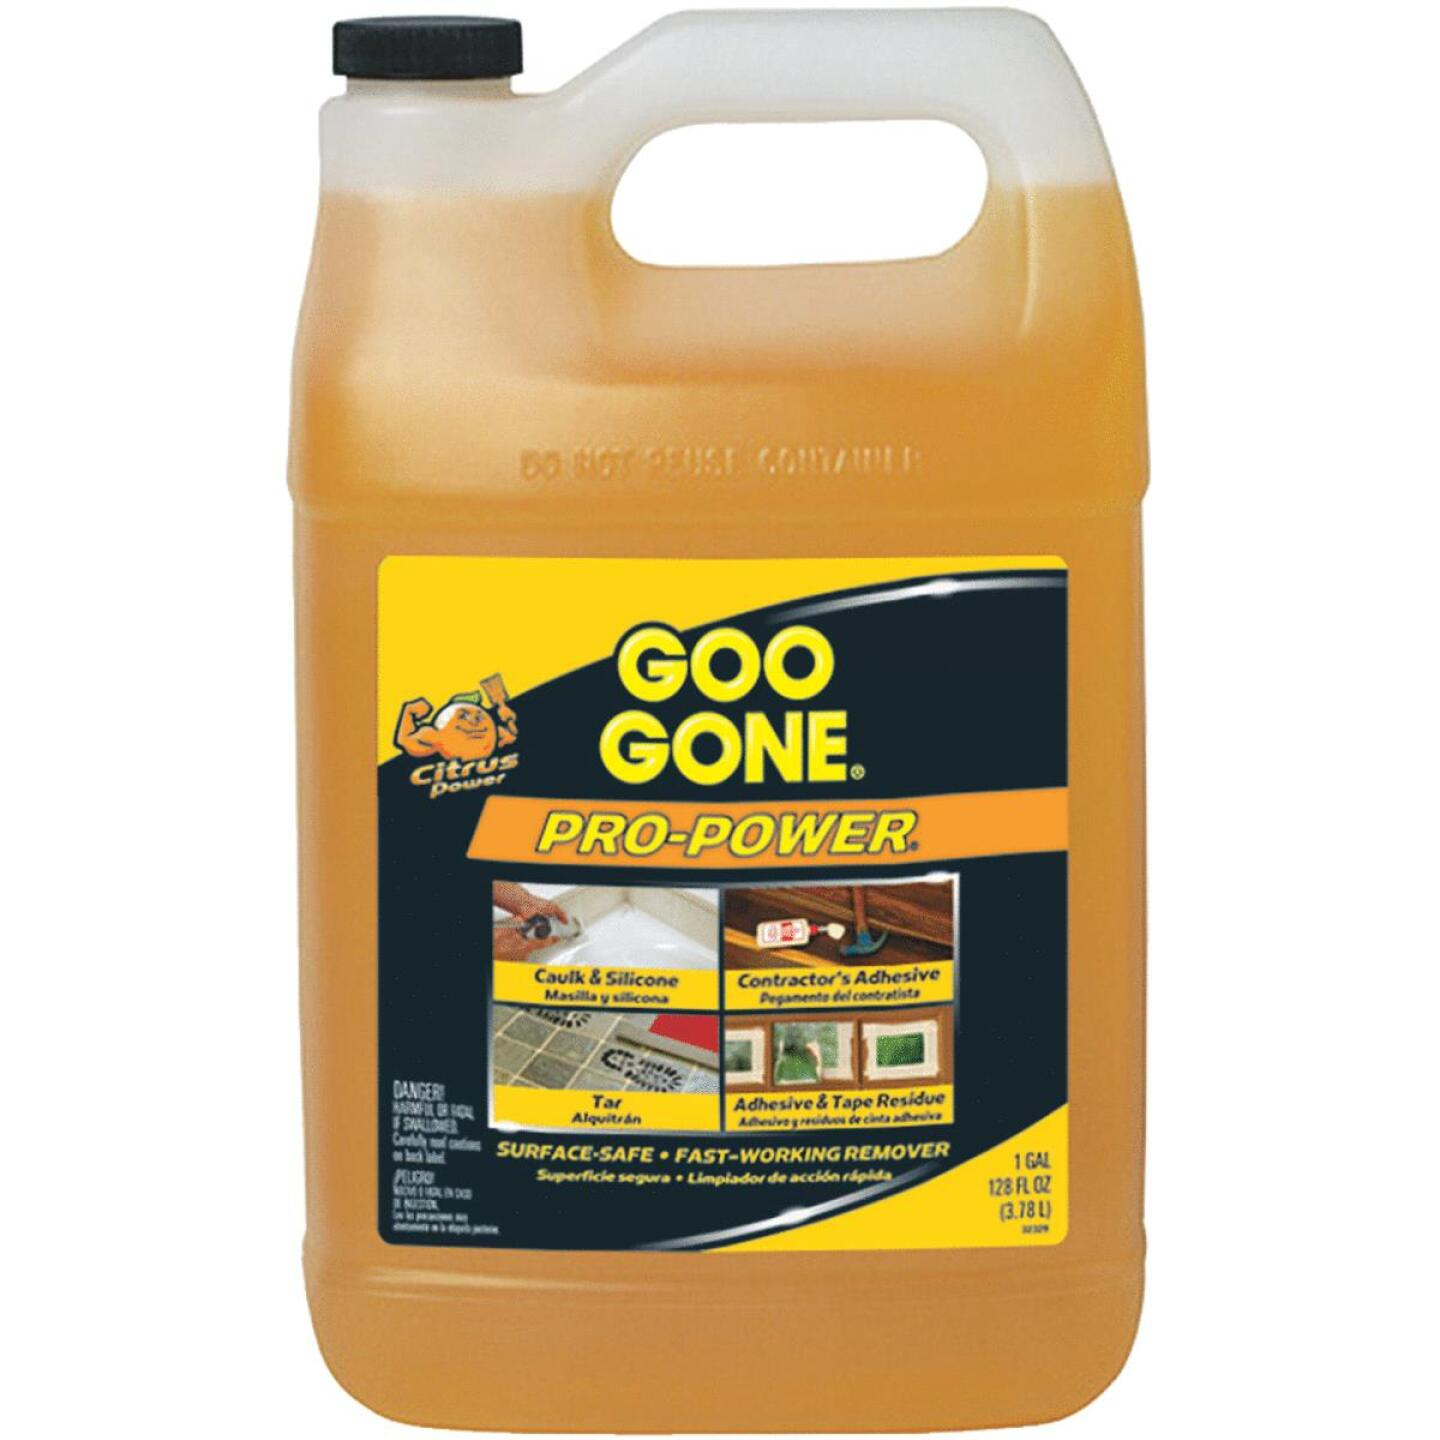 Goo Gone 1 Gal. Pro-Power Adhesive Remover Image 265